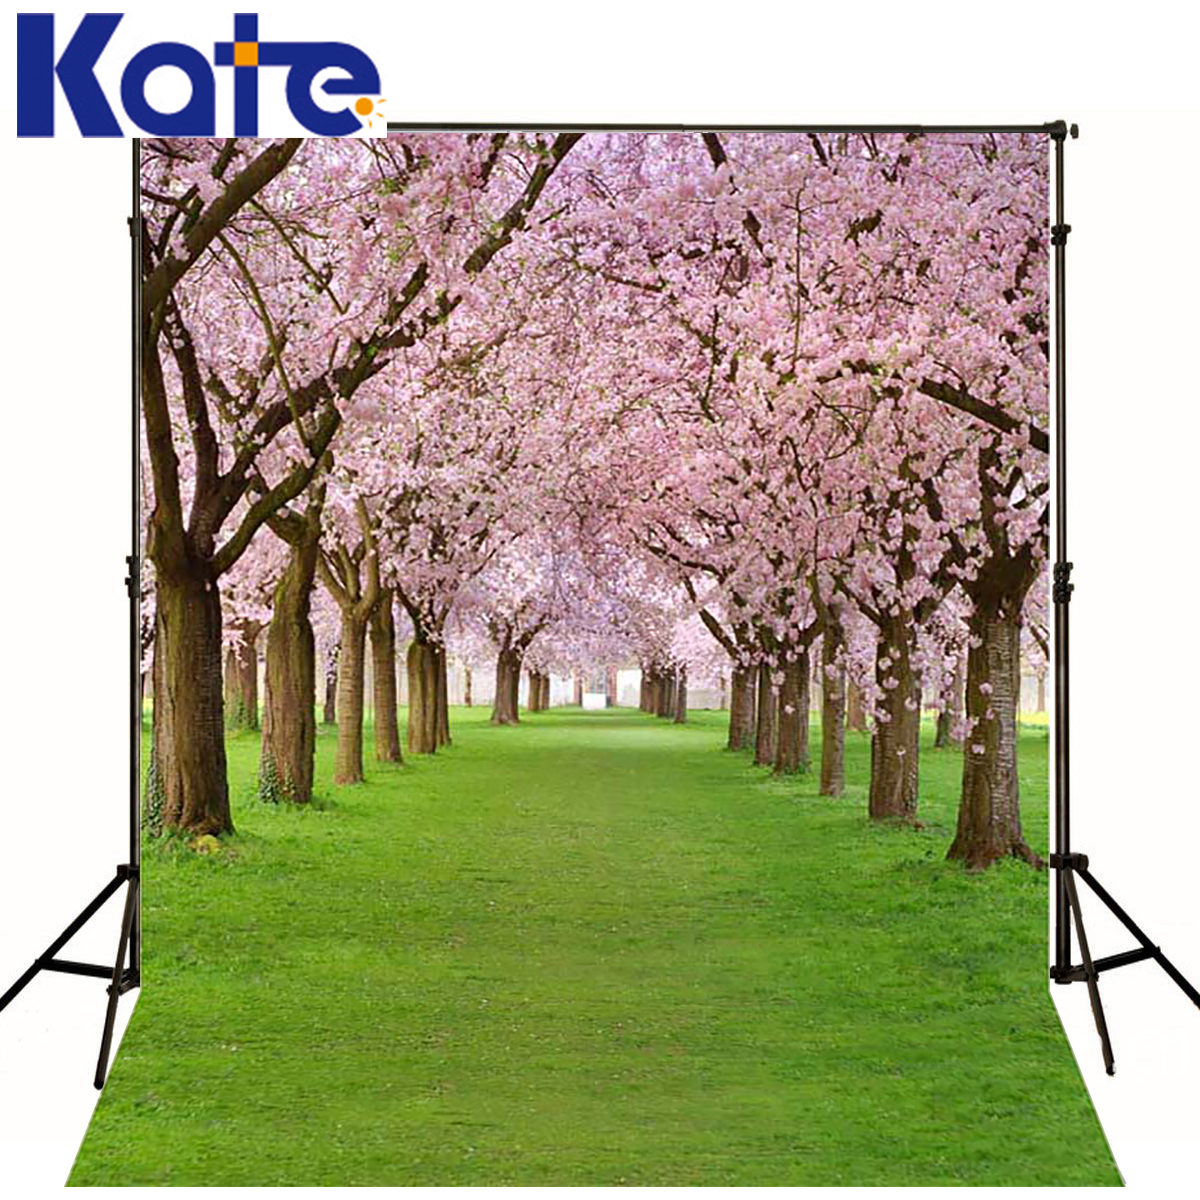 KATE Photography Backdrops Spring Backgrounds Newborn Green Lawn Floral Backdrops Photography Scenery Backdrop for Photo Studio<br>